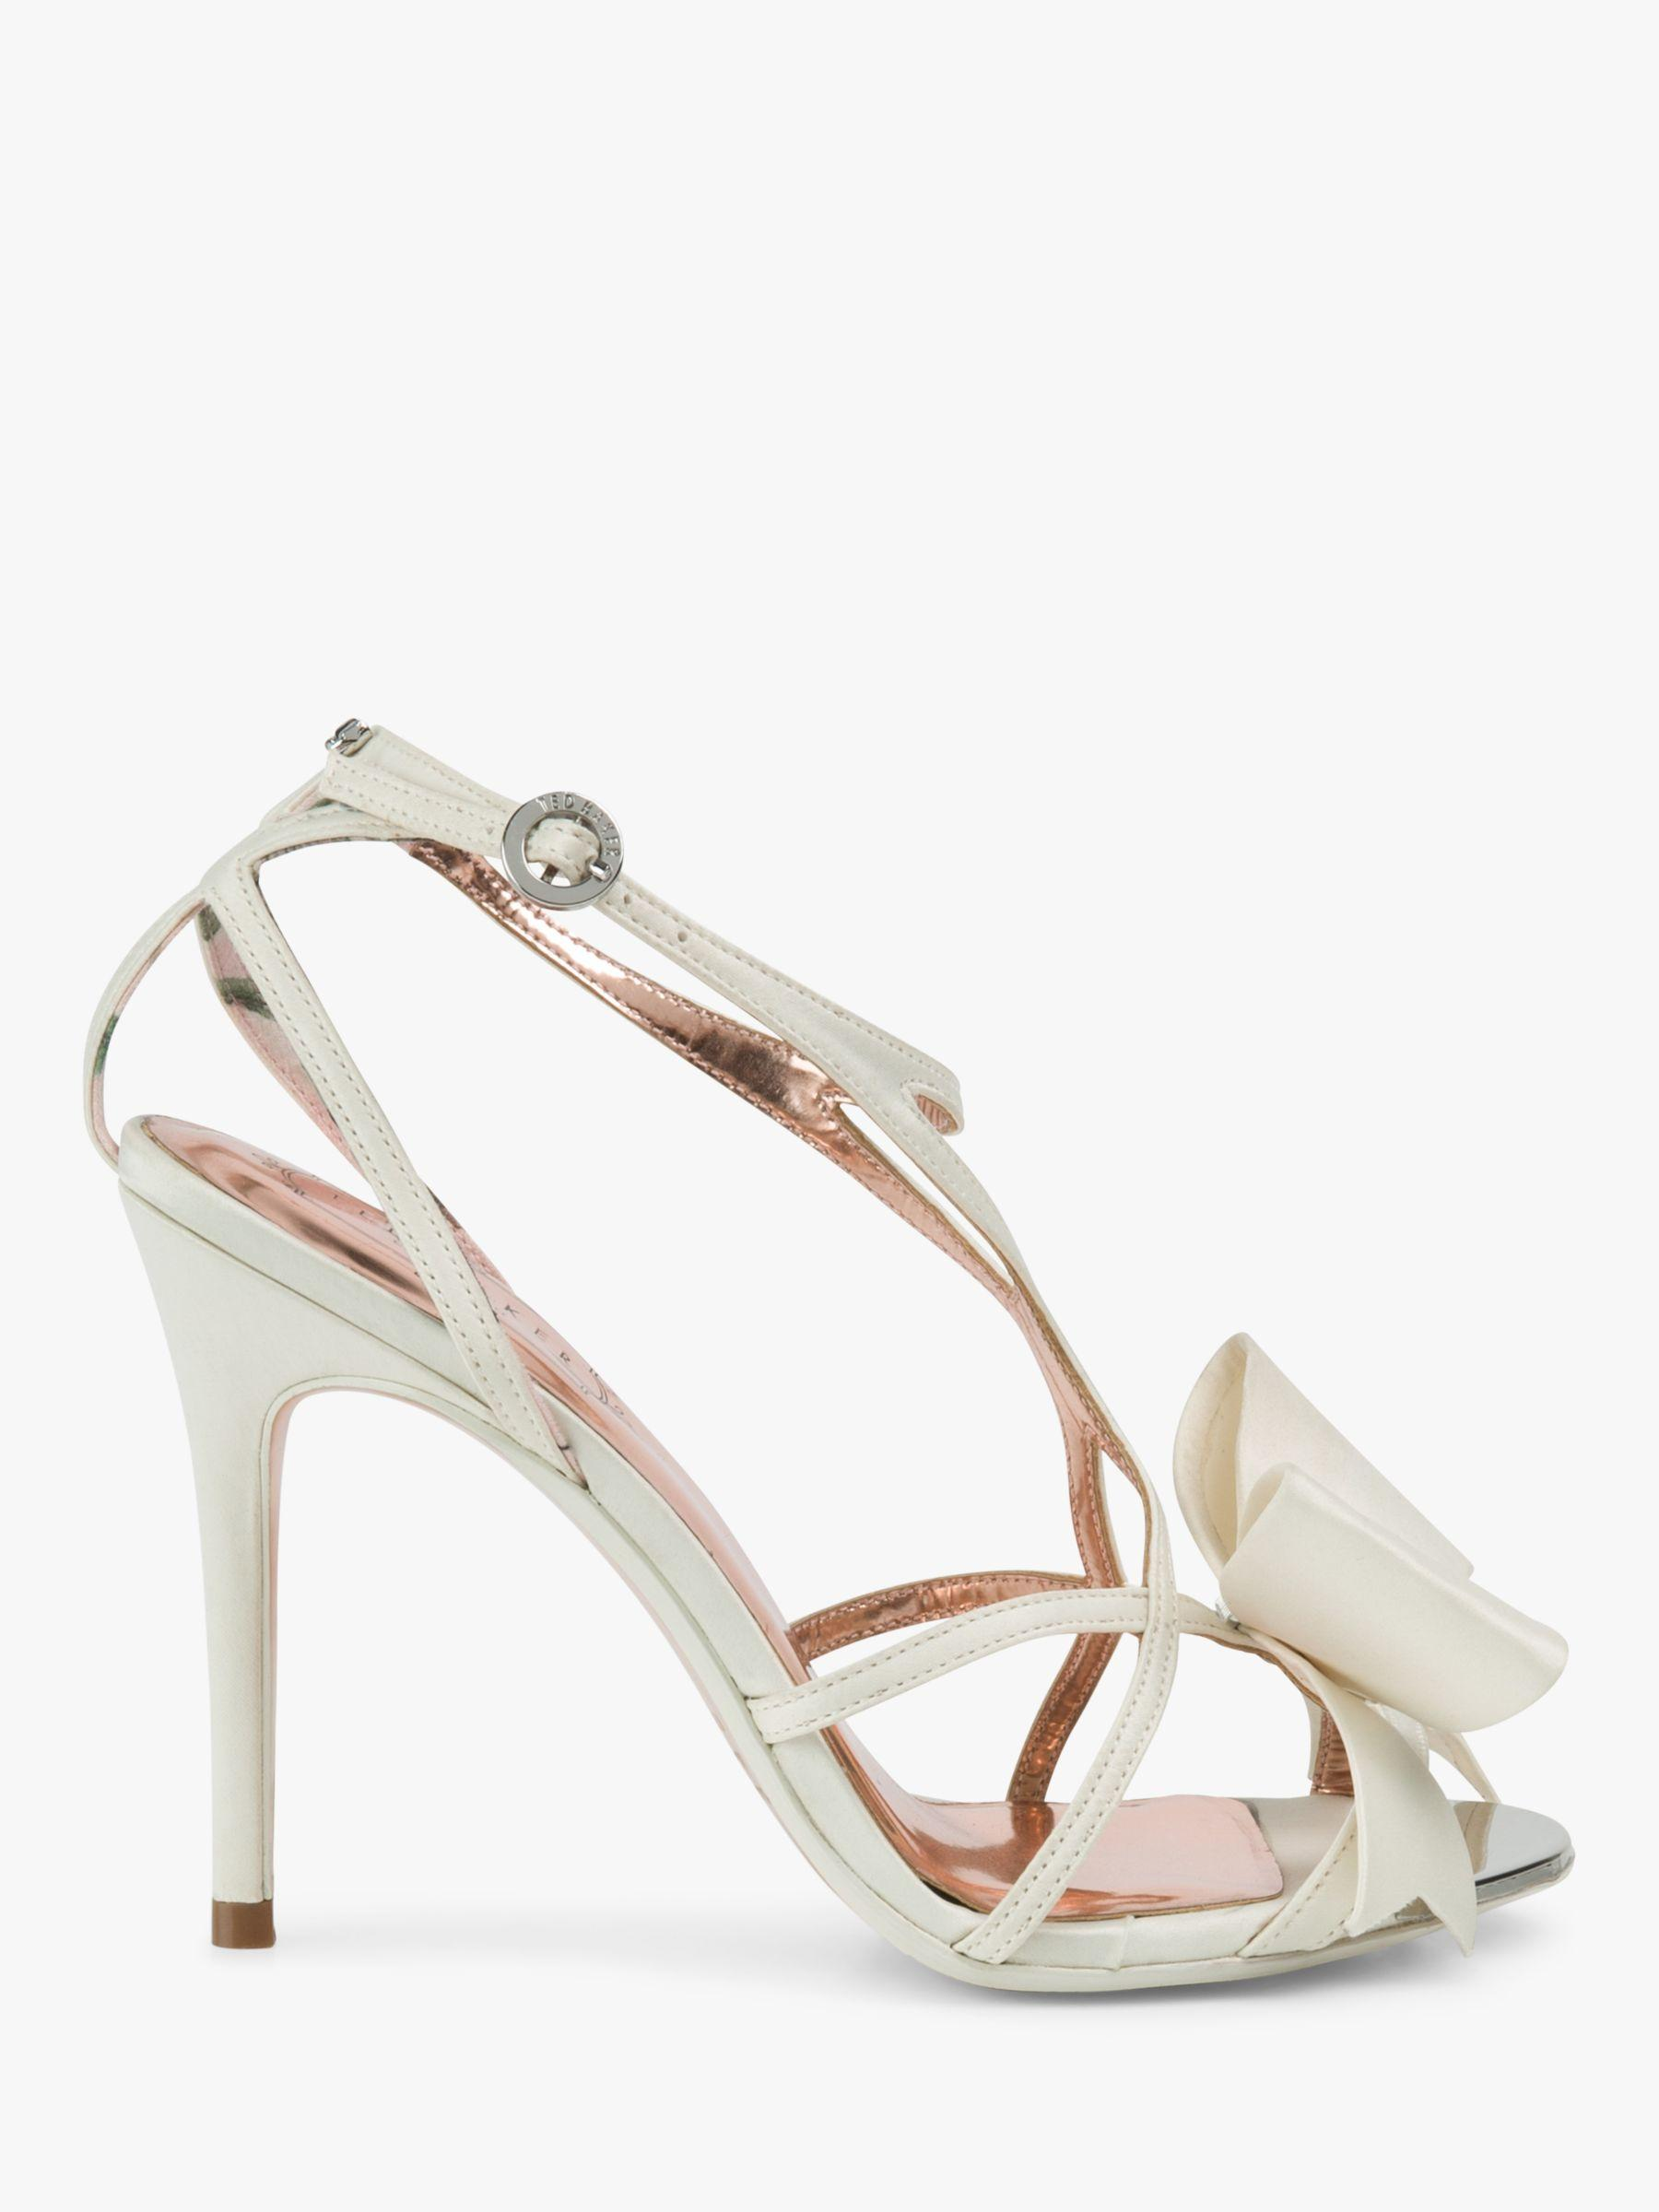 326a9d185 Ted Baker. Women s Arayis Bow Stiletto Heel Sandals